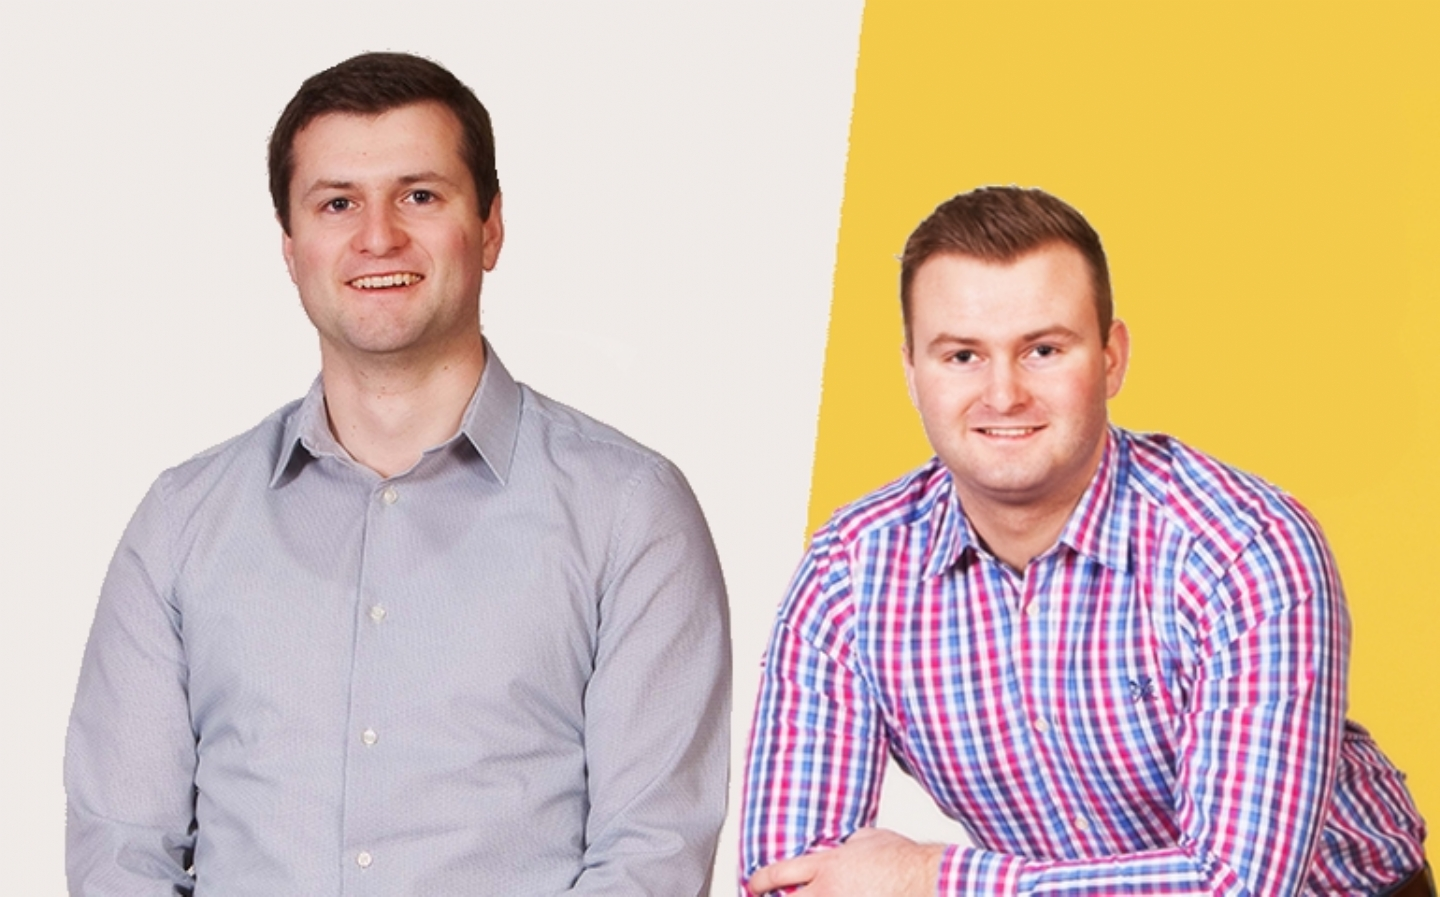 Keycraft welcome new account managers to strengthen team